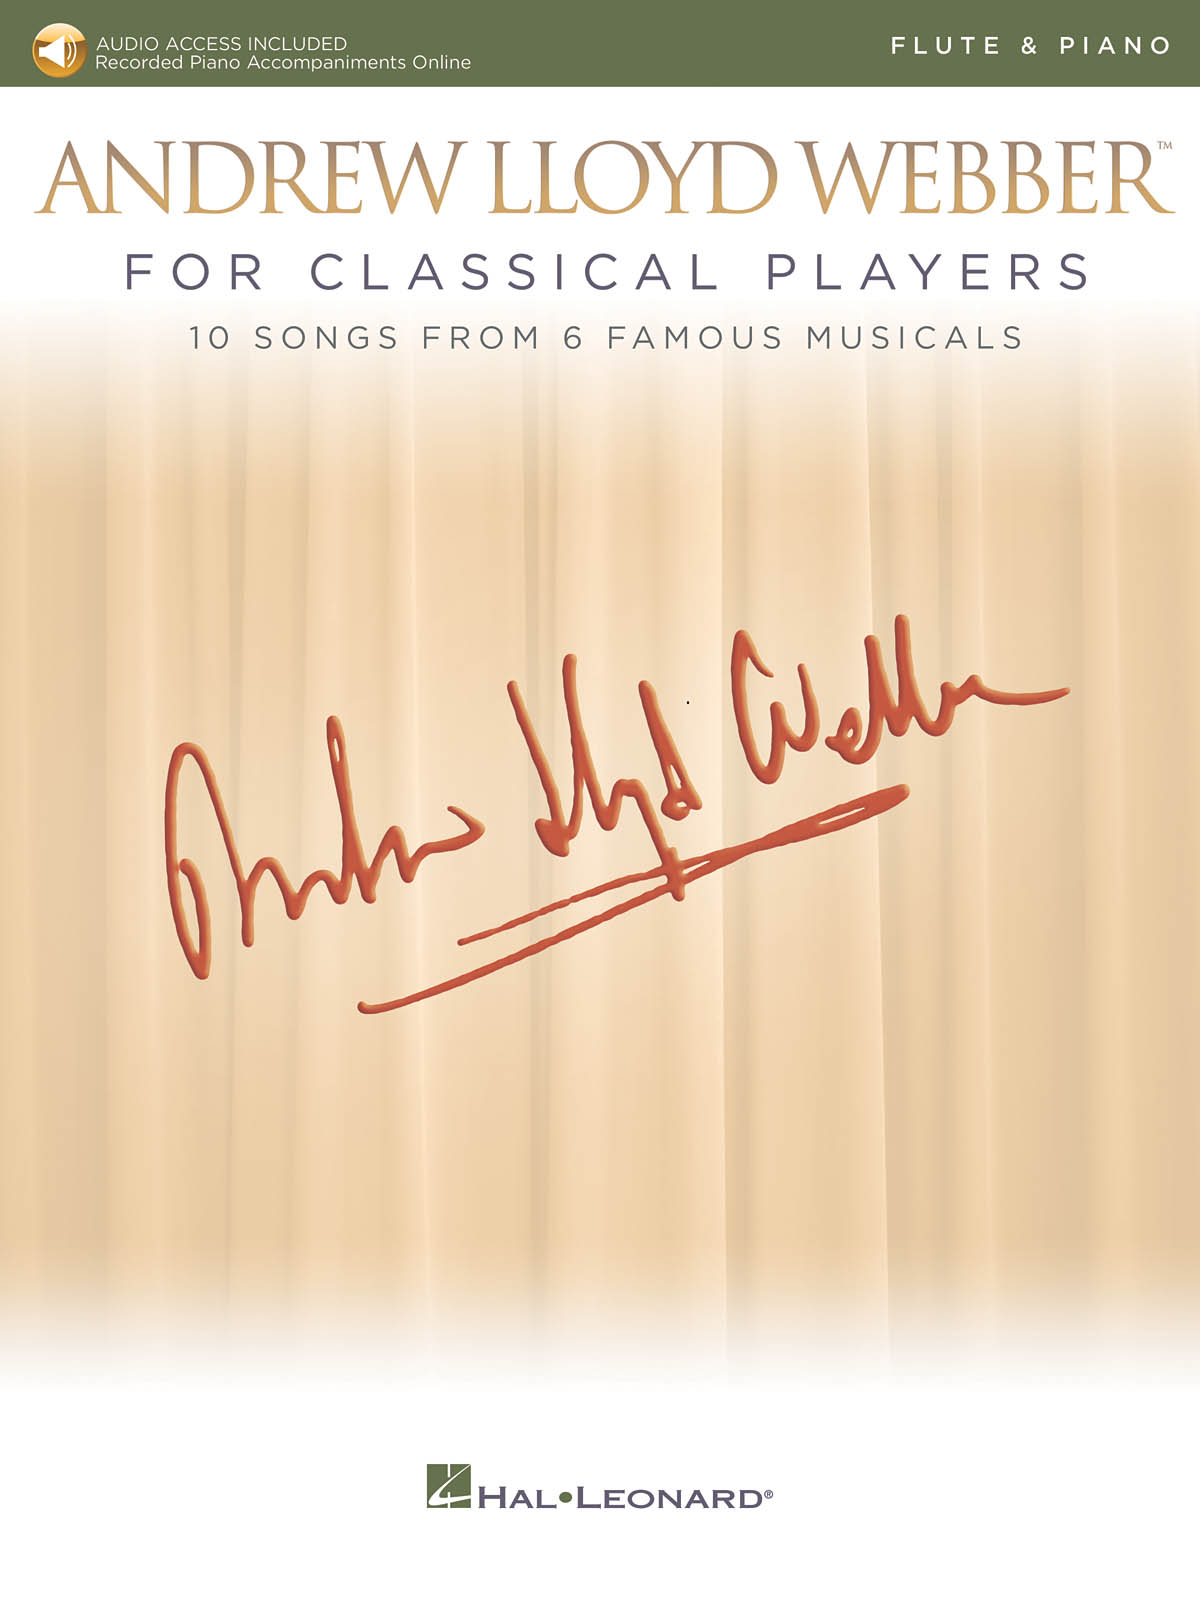 Andrew Lloyd Webber: Andrew Lloyd Webber for Classical Players: Flute and